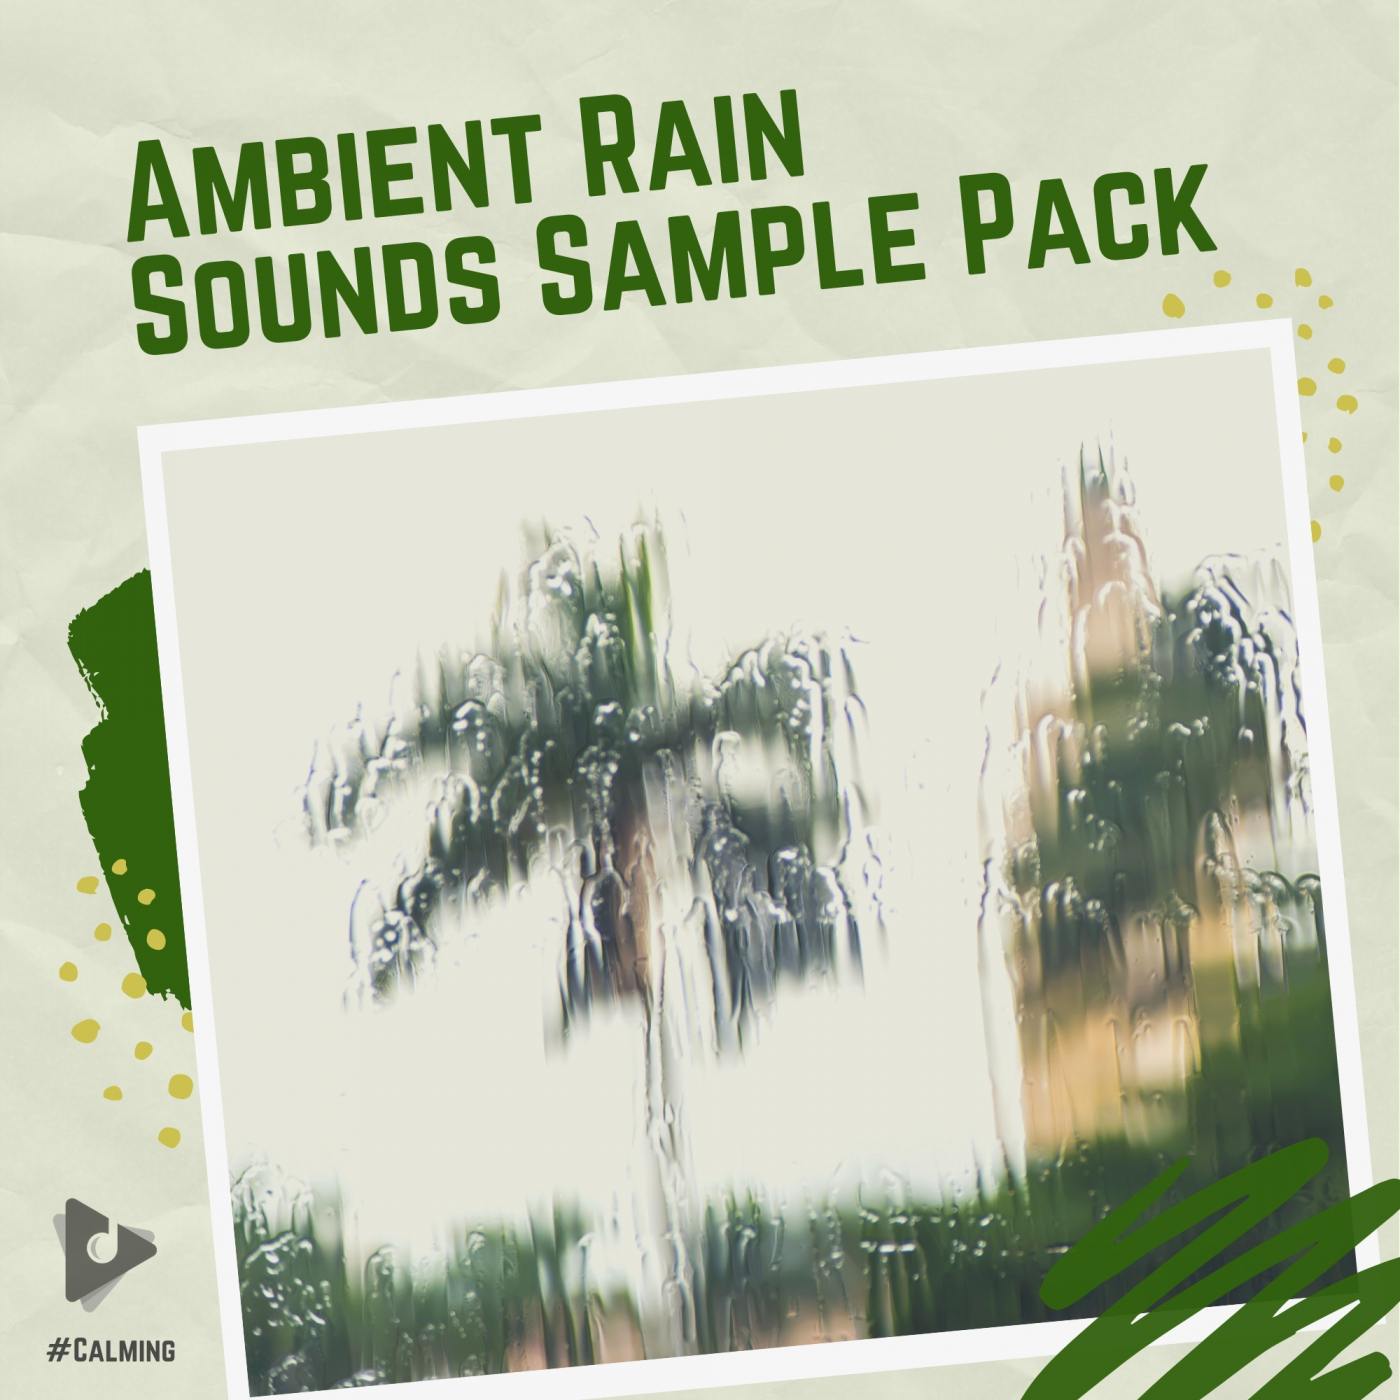 Ambient Rain Sounds Sample Pack